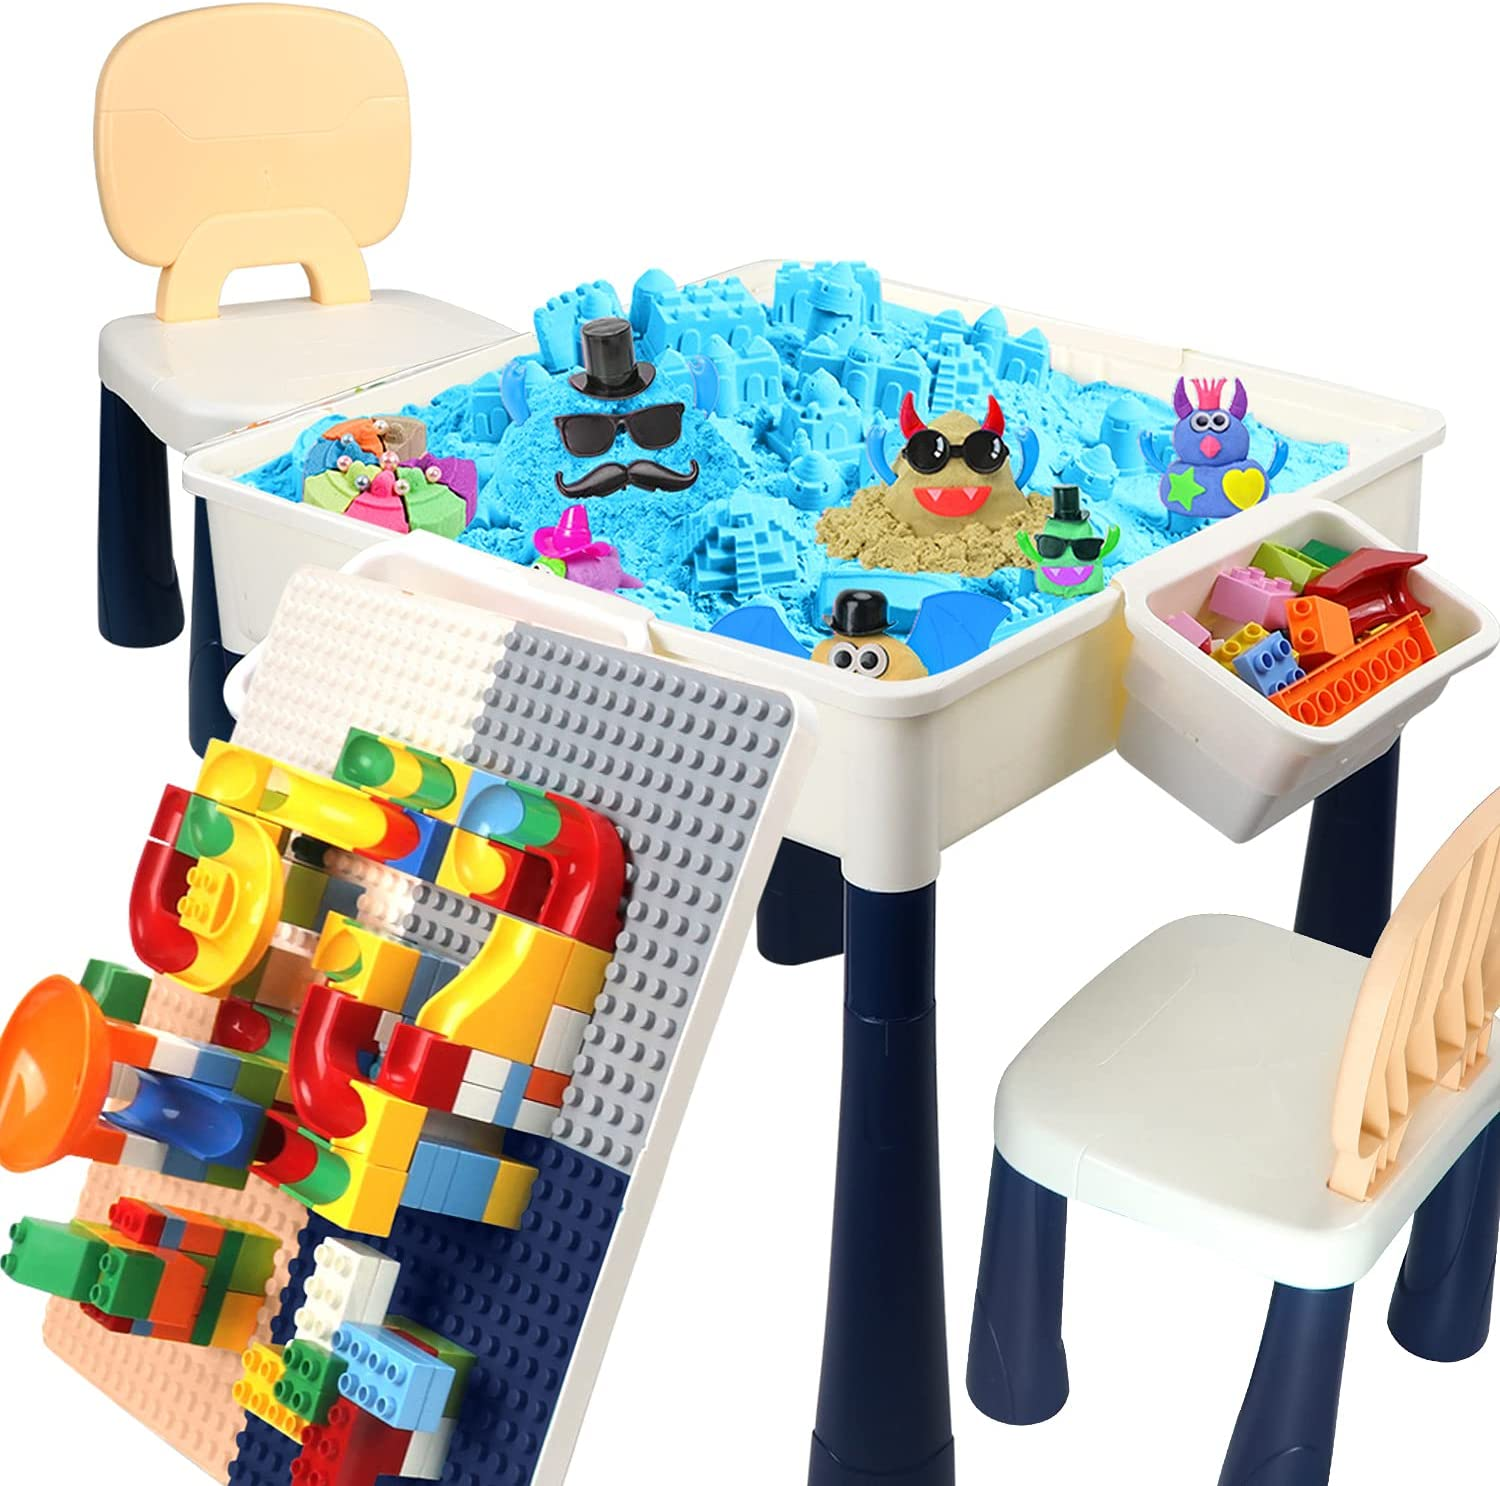 Toddler Cheap Table Factory outlet Chair Set 7-in-1 Multi wit Kids Activity